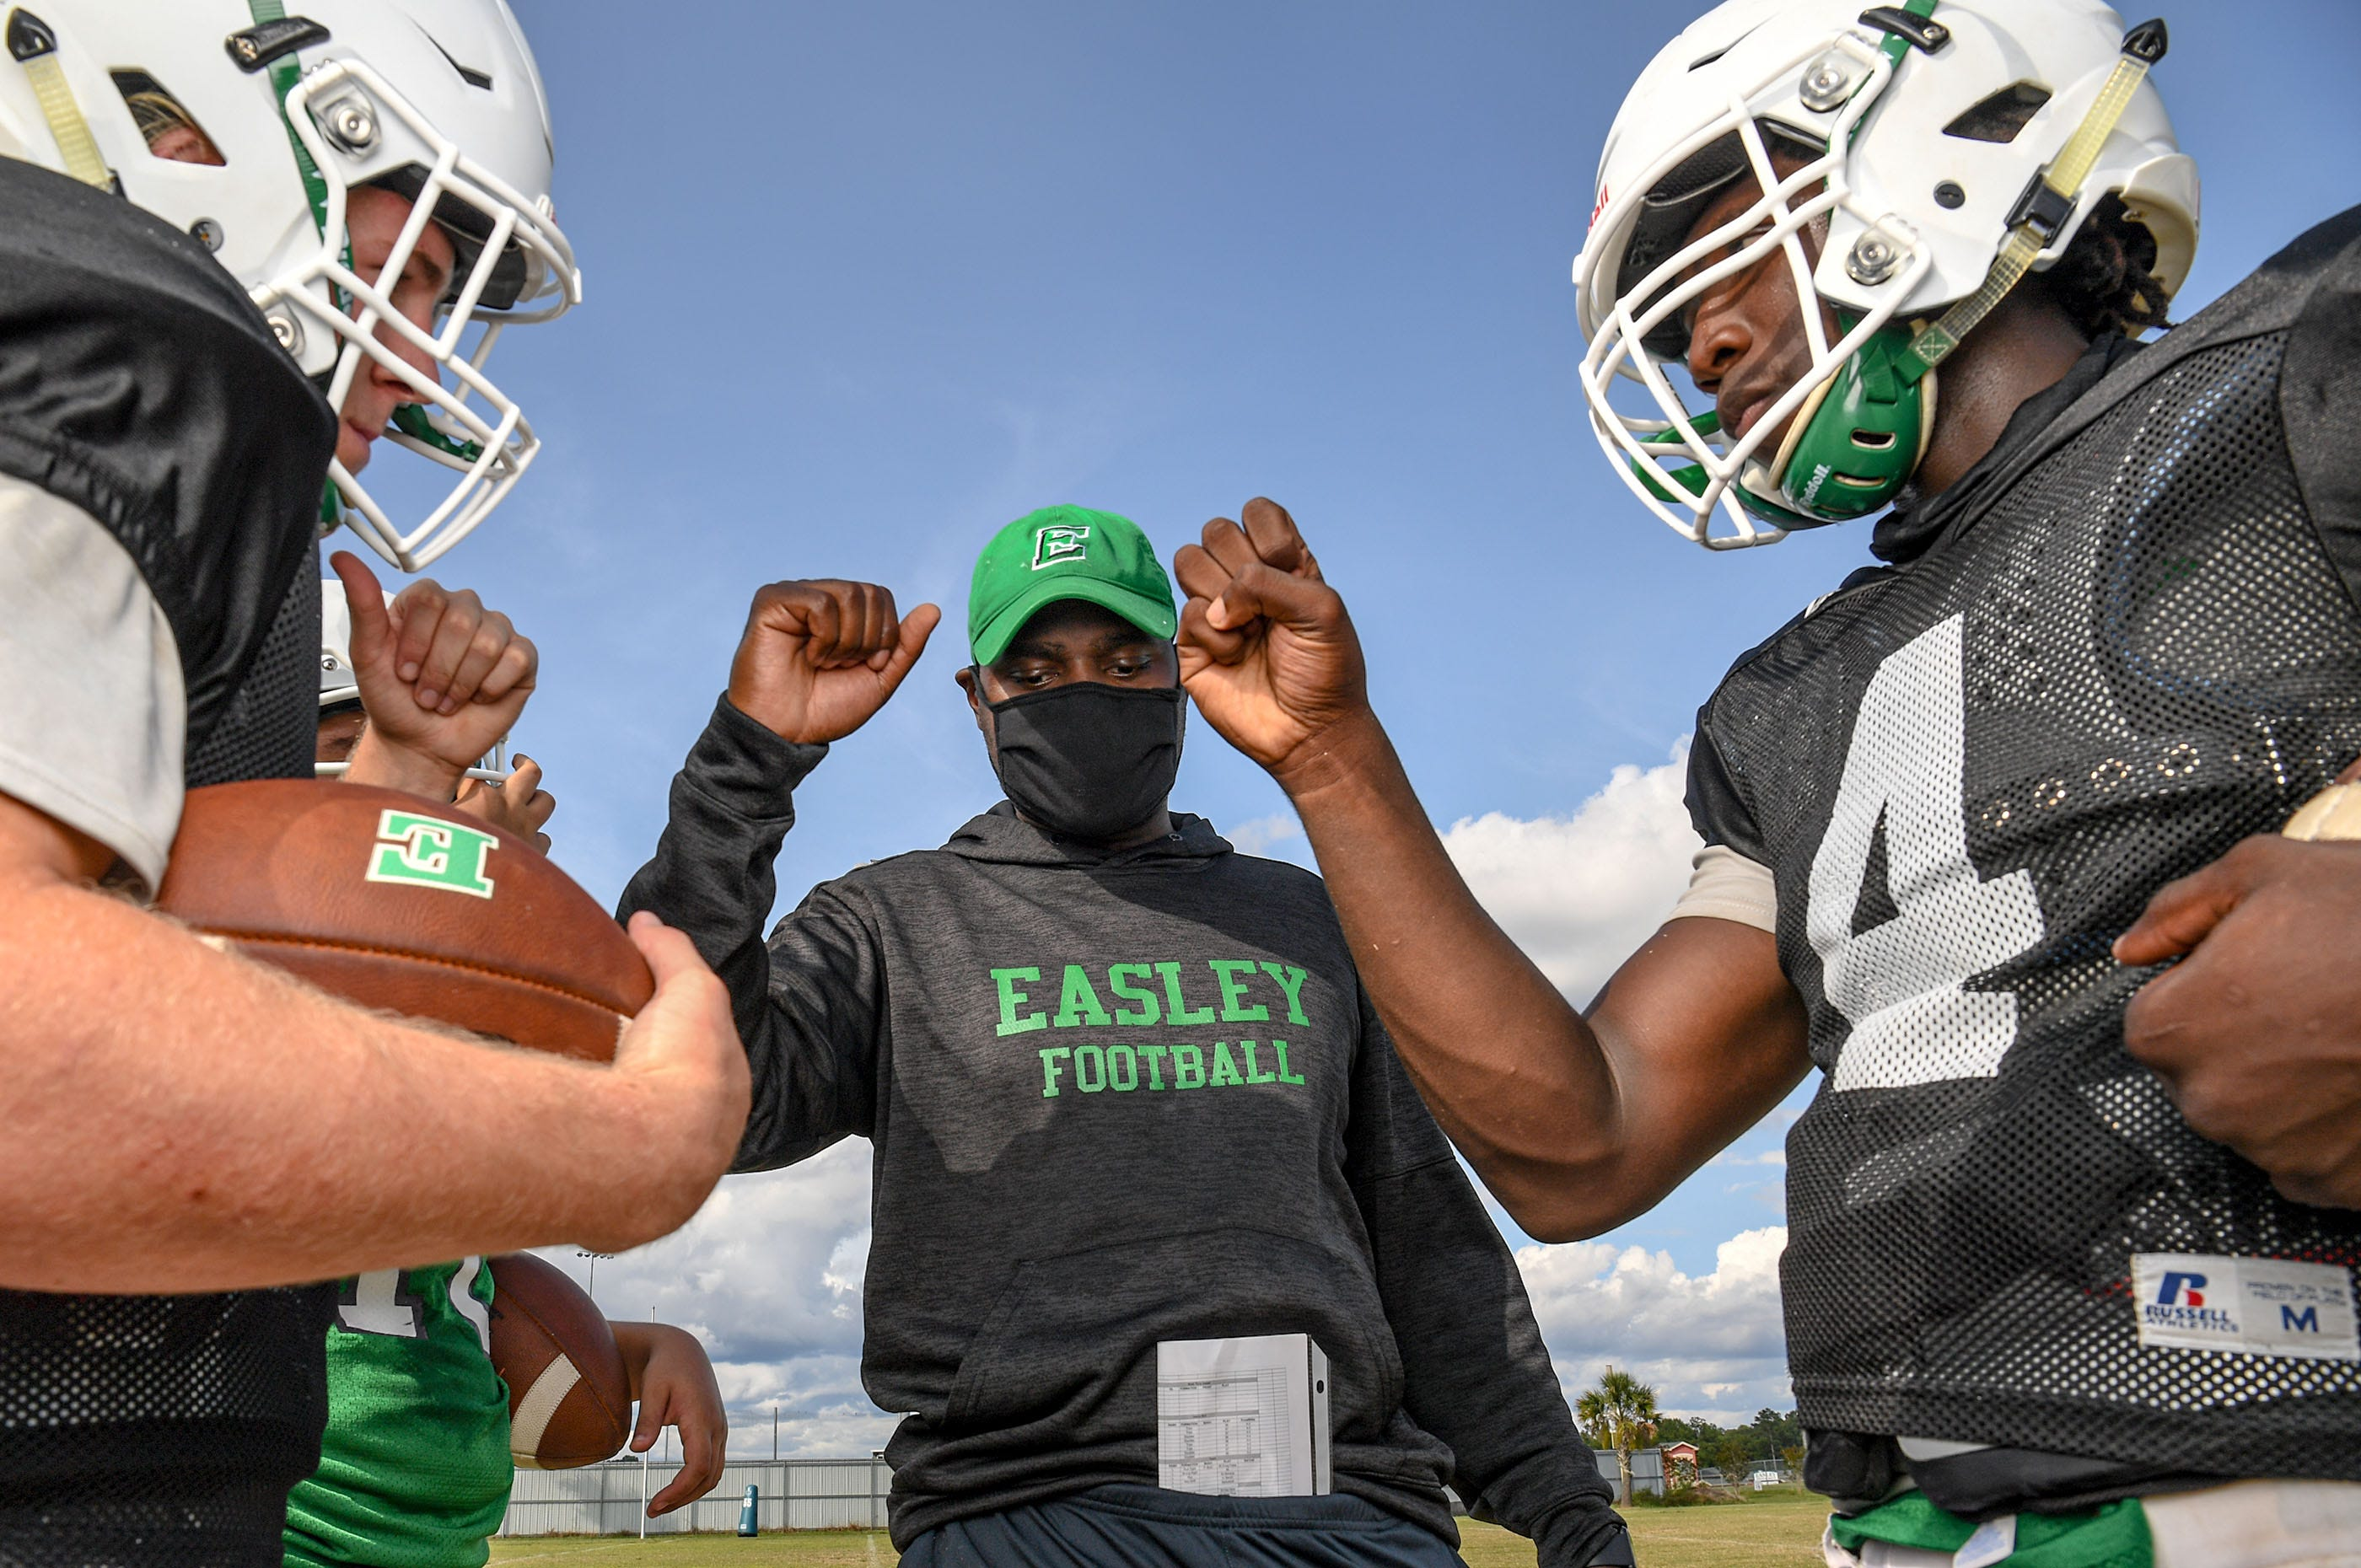 Easley football quarterbacks Kasten Harvey, left, and A.J. Brown break from a huddle with Head Coach Jordan Durrah before a drill in Easley, S.C. September 2020.